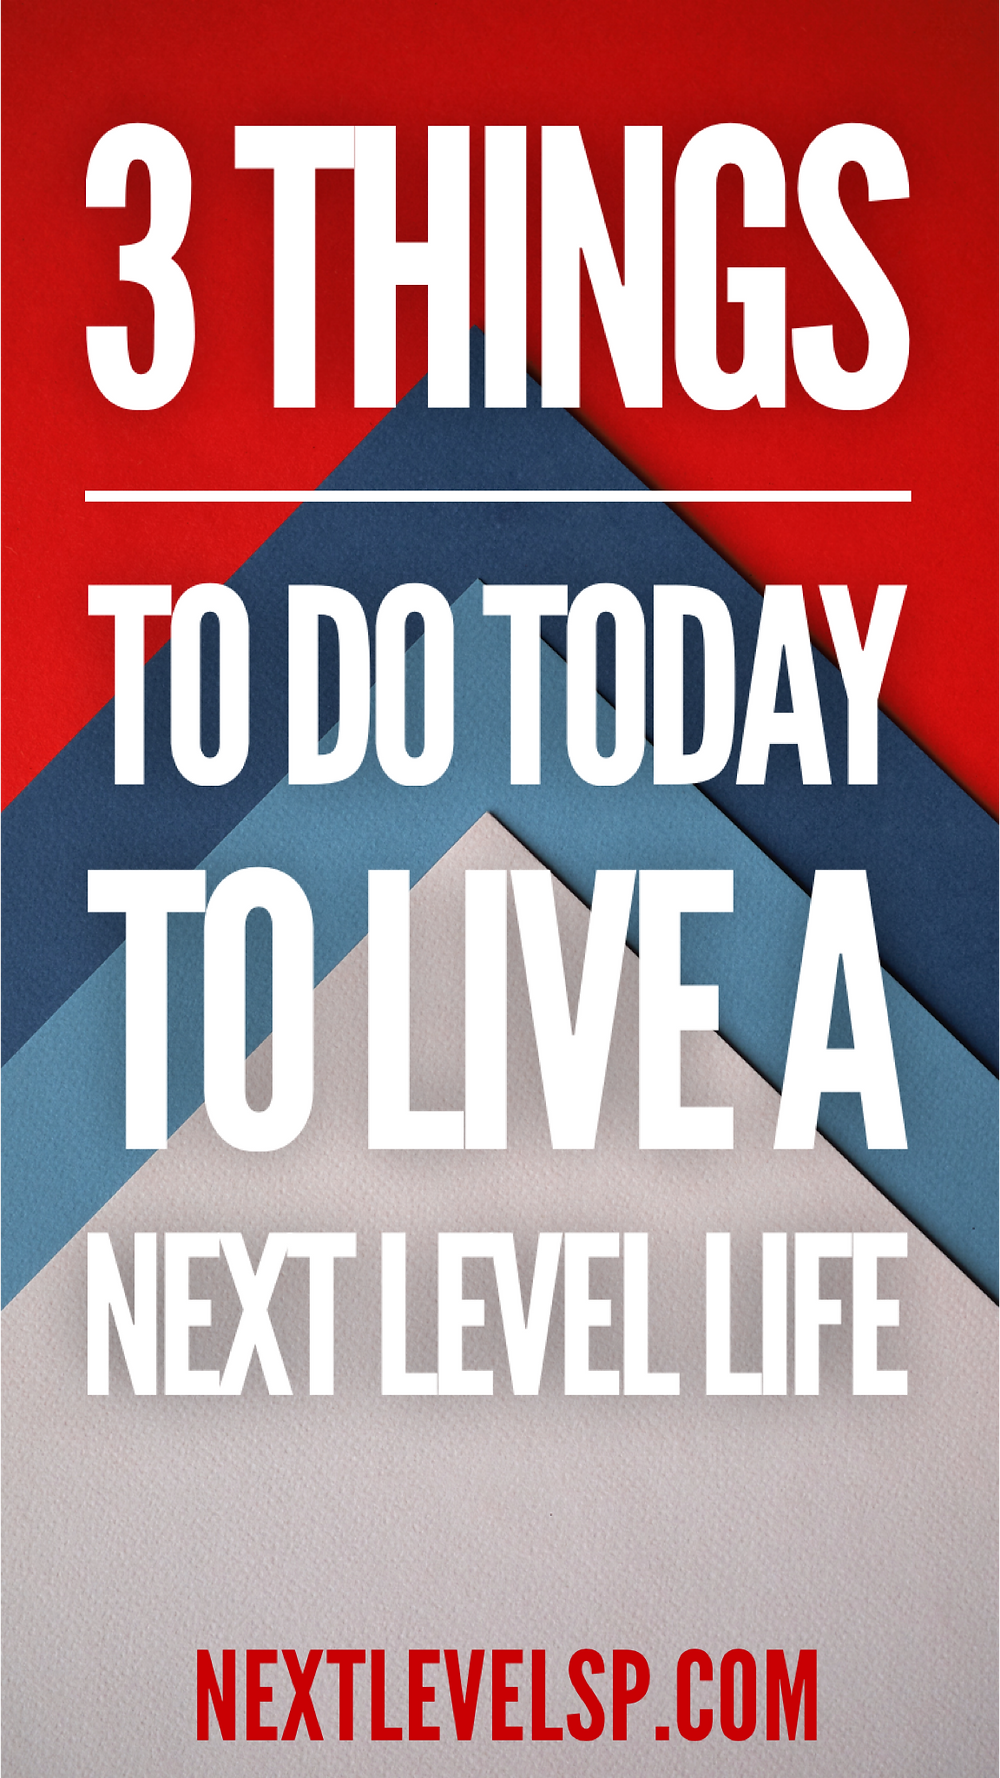 3 things to do today to live a next level life